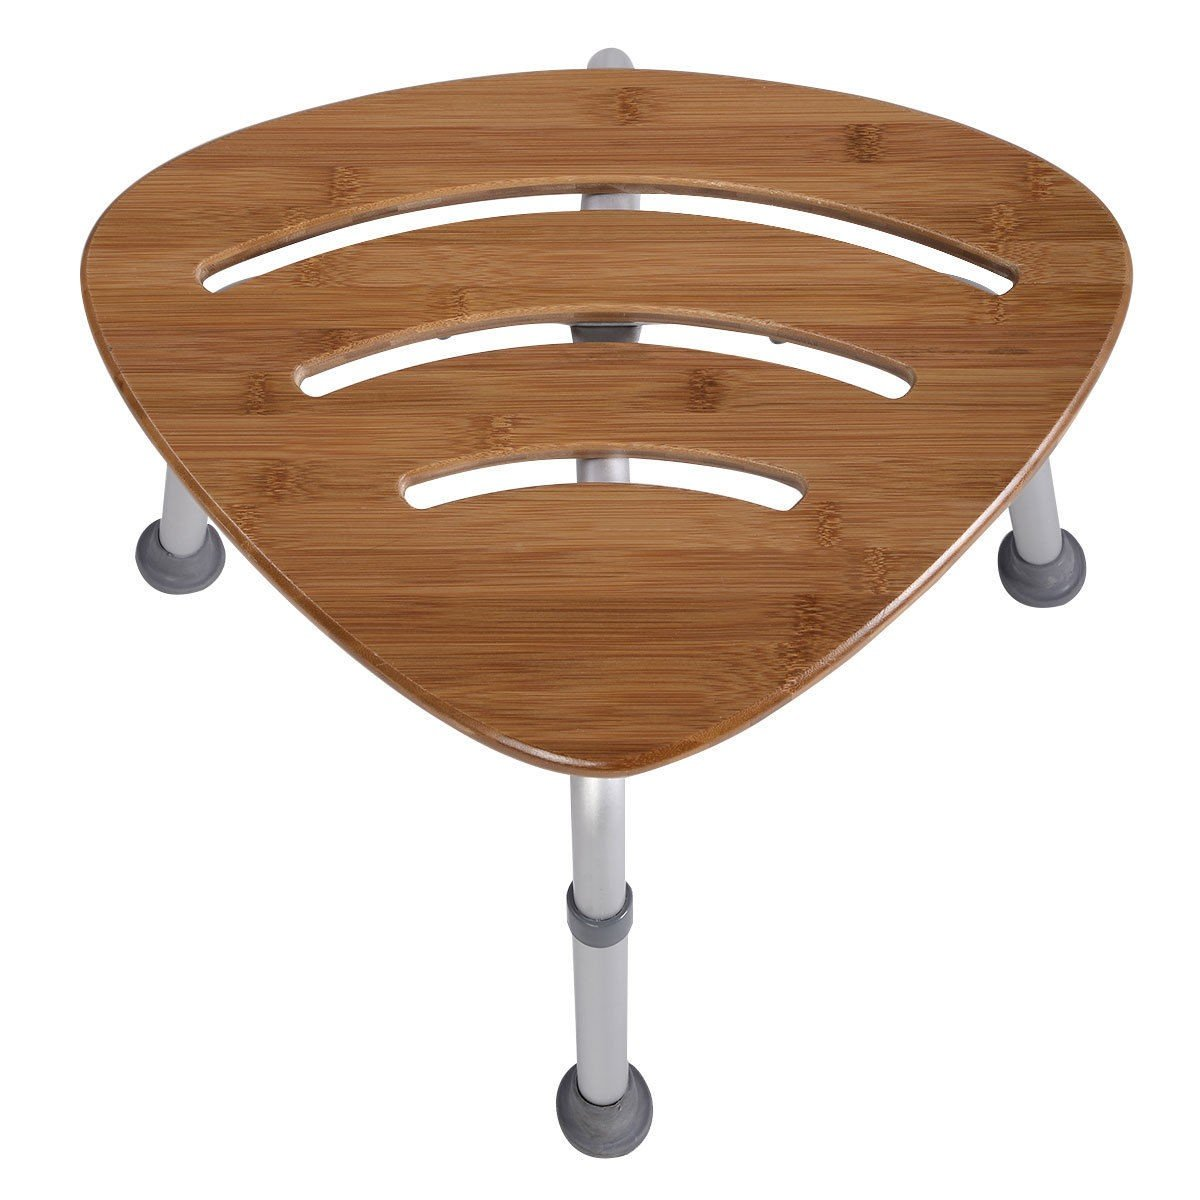 Fanshaped Bamboo Bath Seat Shower Chair – By Choice Products